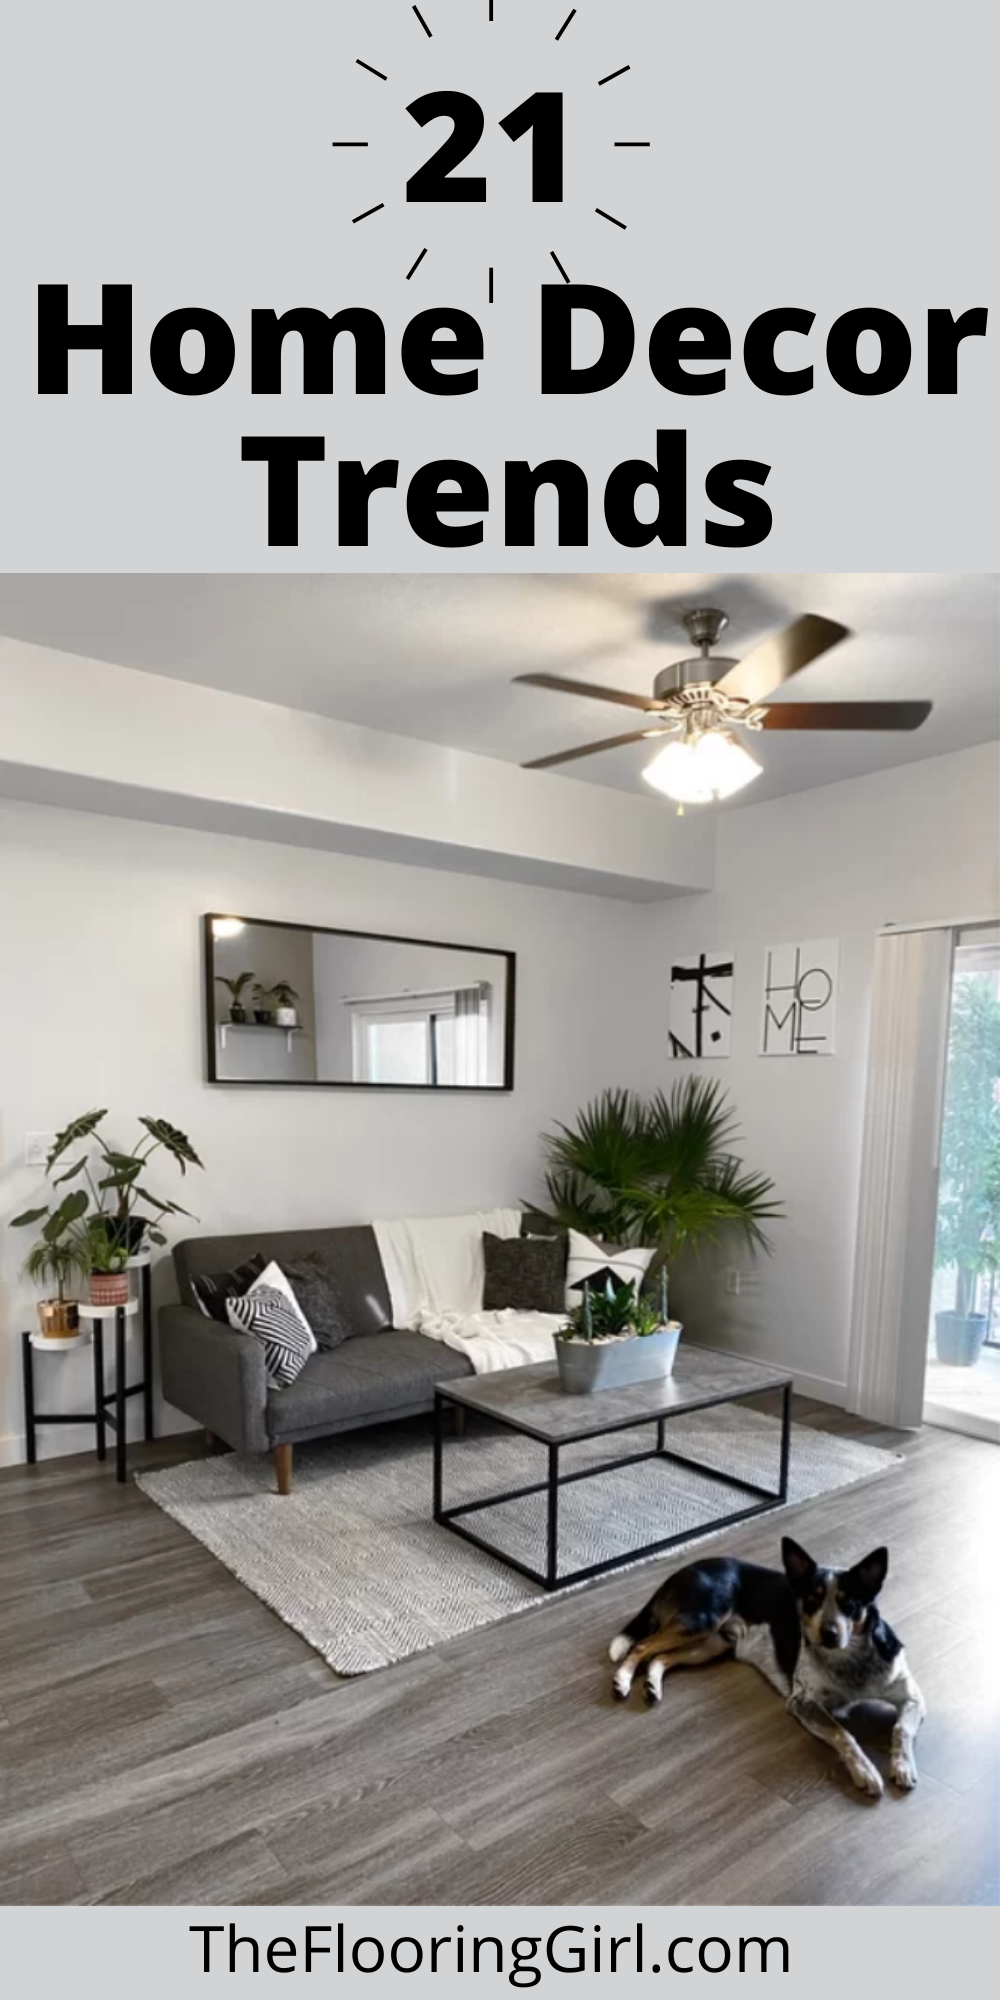 32 Home Decor Trends for 2032 in 2032   Home decor trends ...